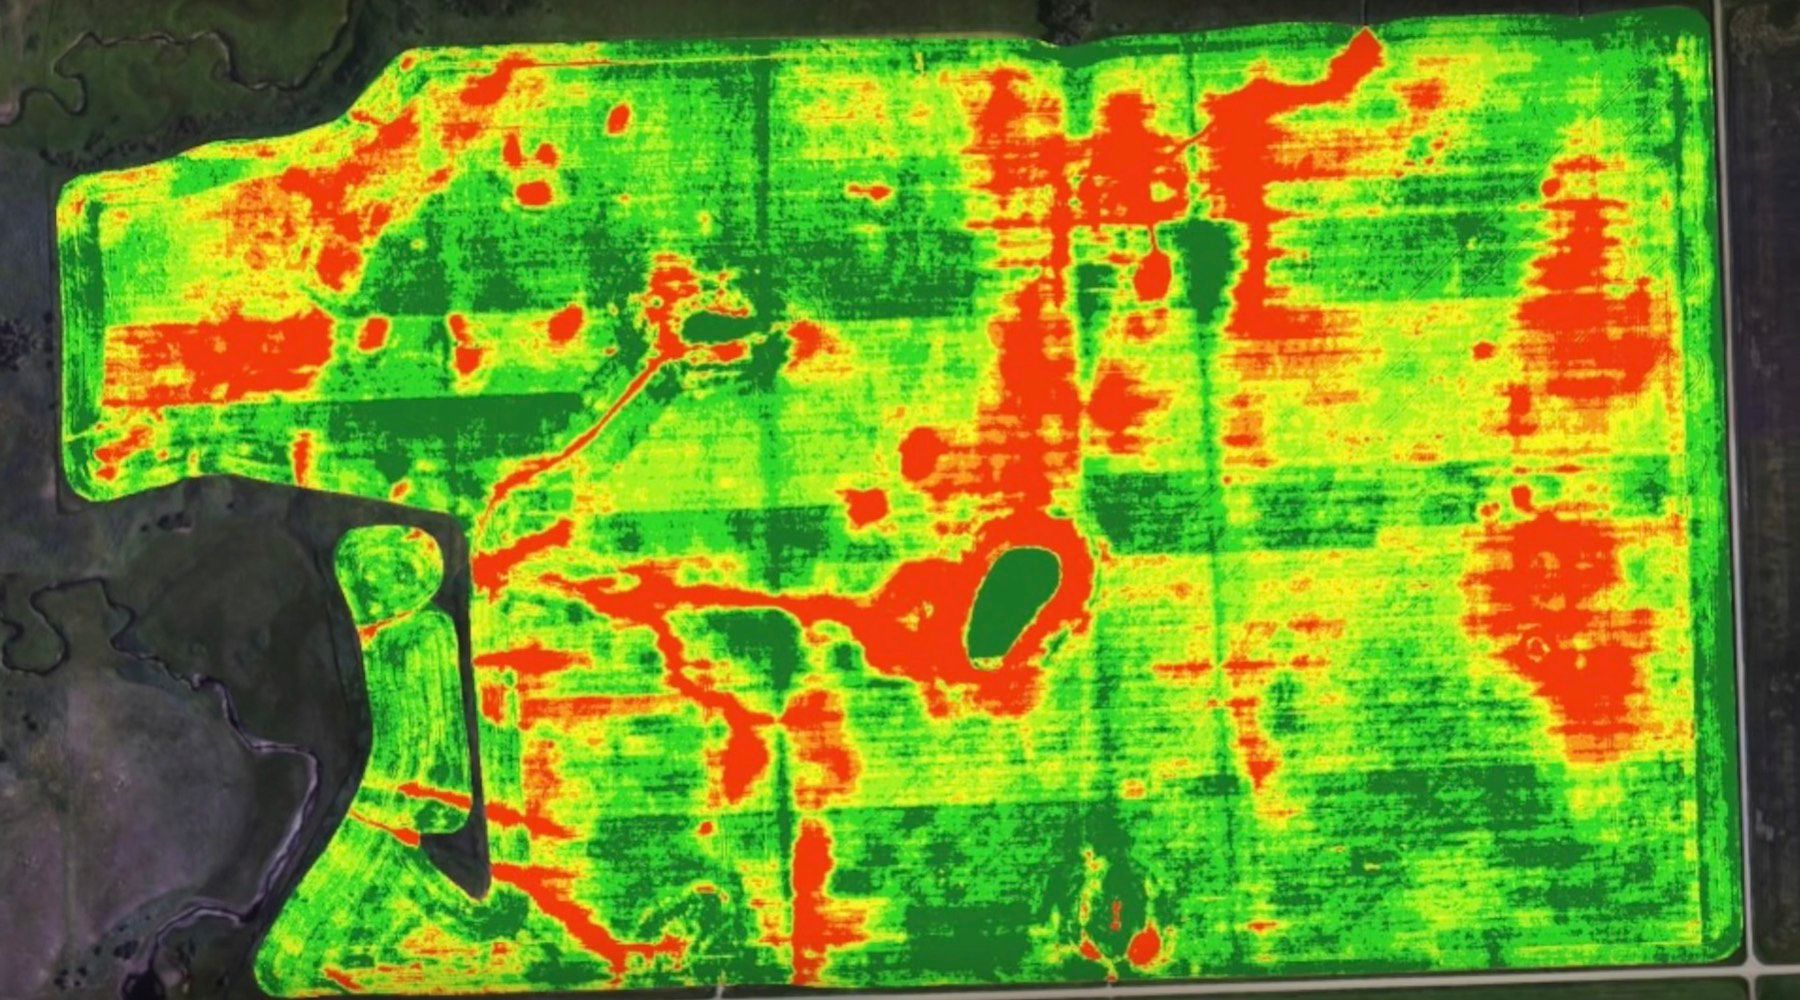 Therman imaging of a farmland field, complied over several drone flights